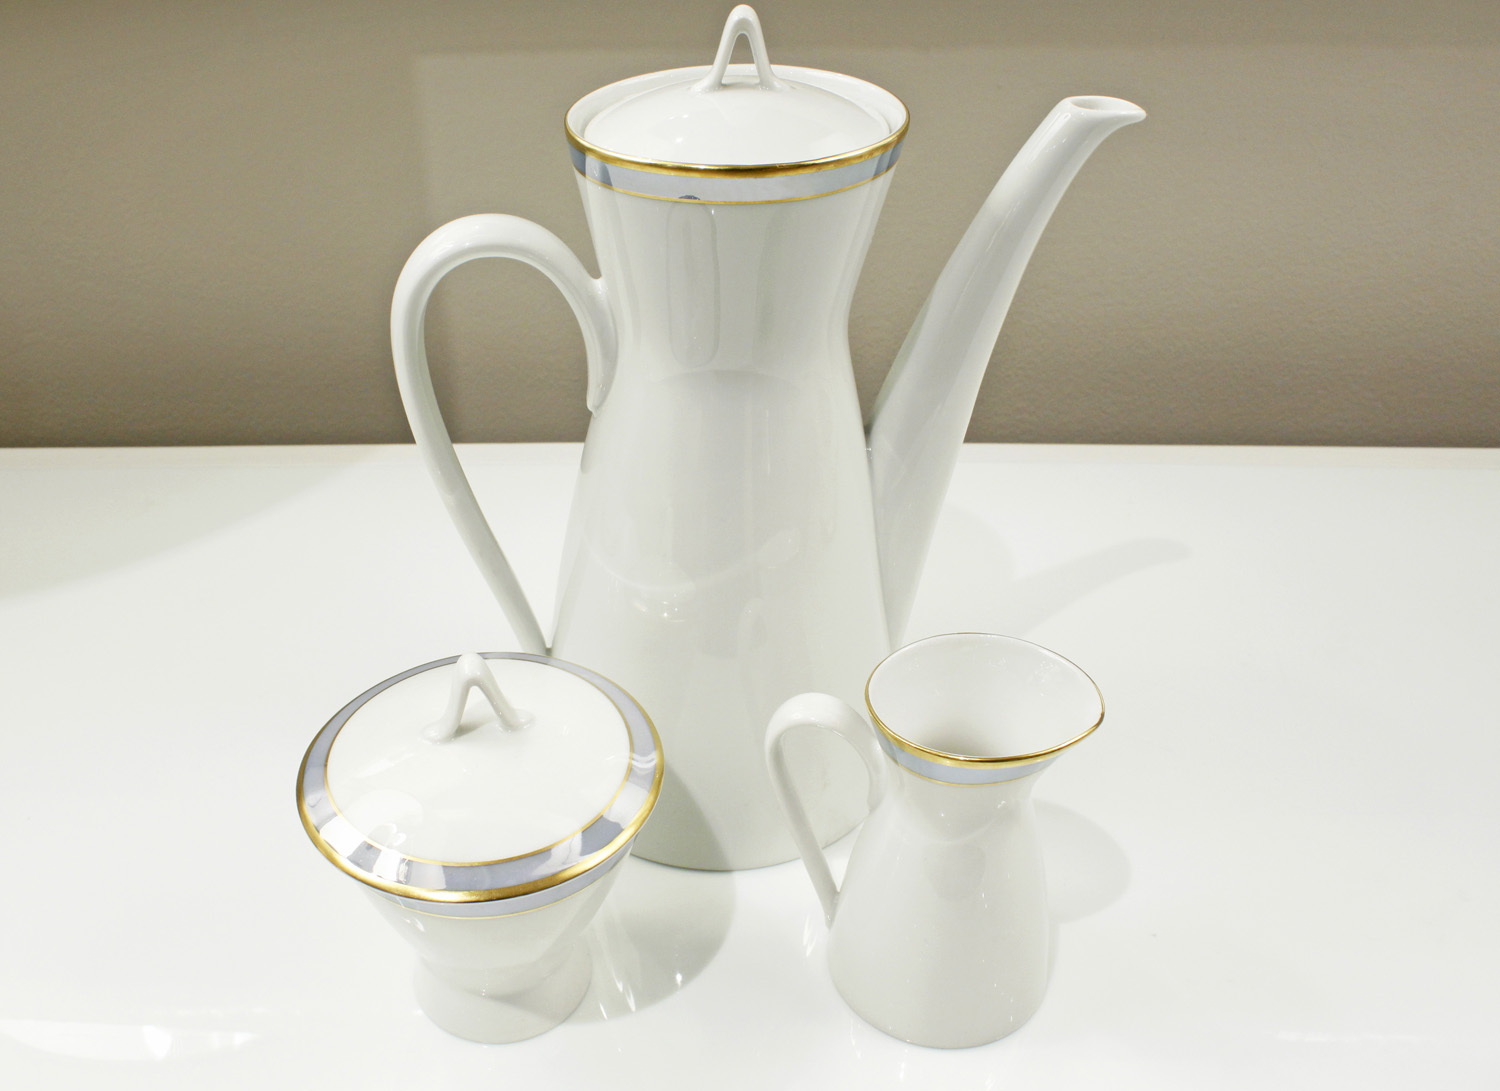 Rosenthal tea service 6 accessory151 hires detail.jpg